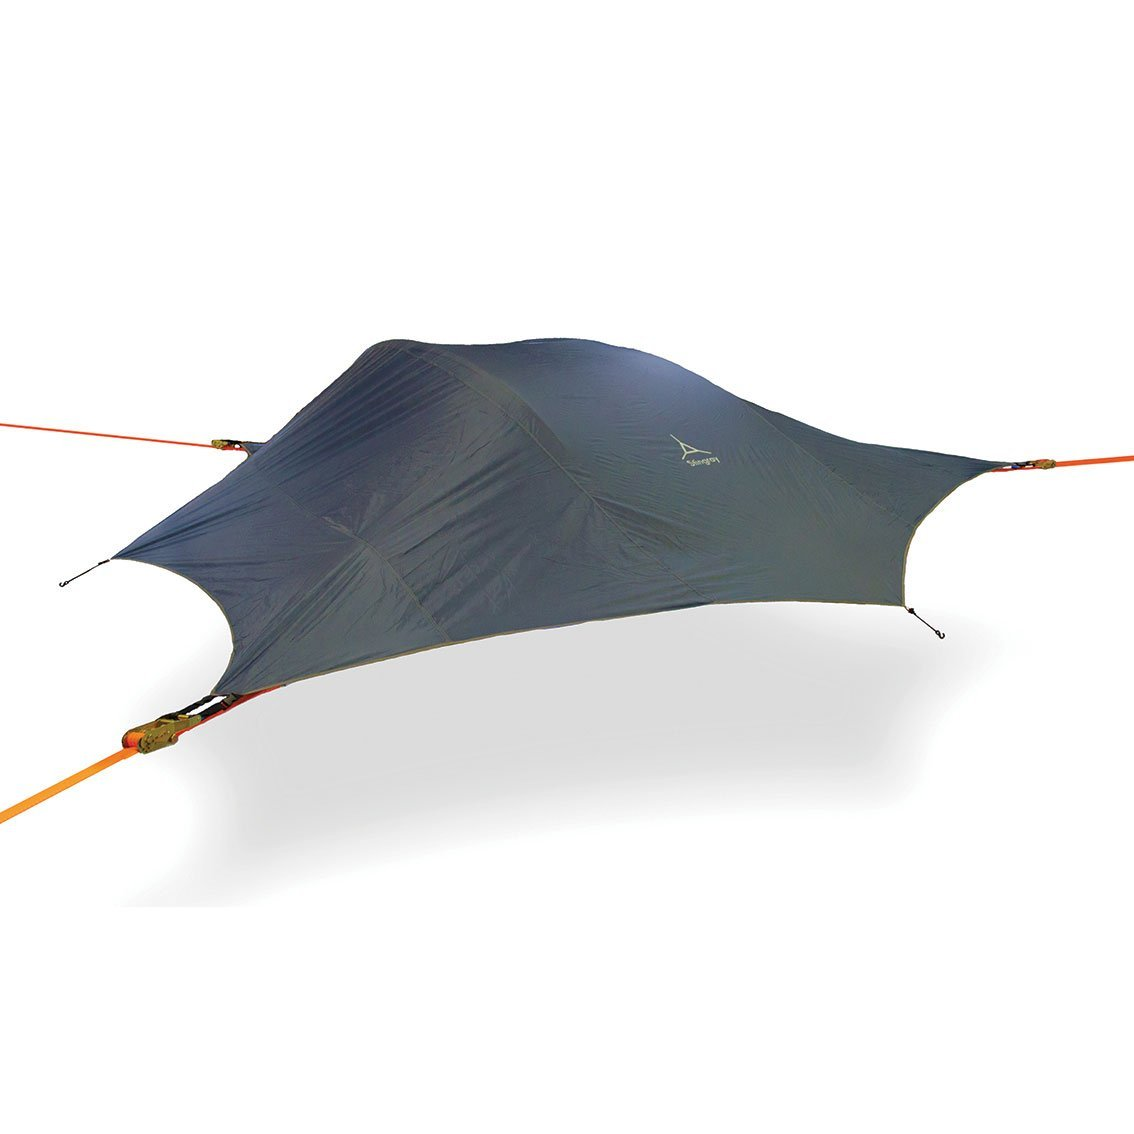 Tentsile | Stingray Tree Tent | 3 Man Suspended Hammock Tent | Dark Grey